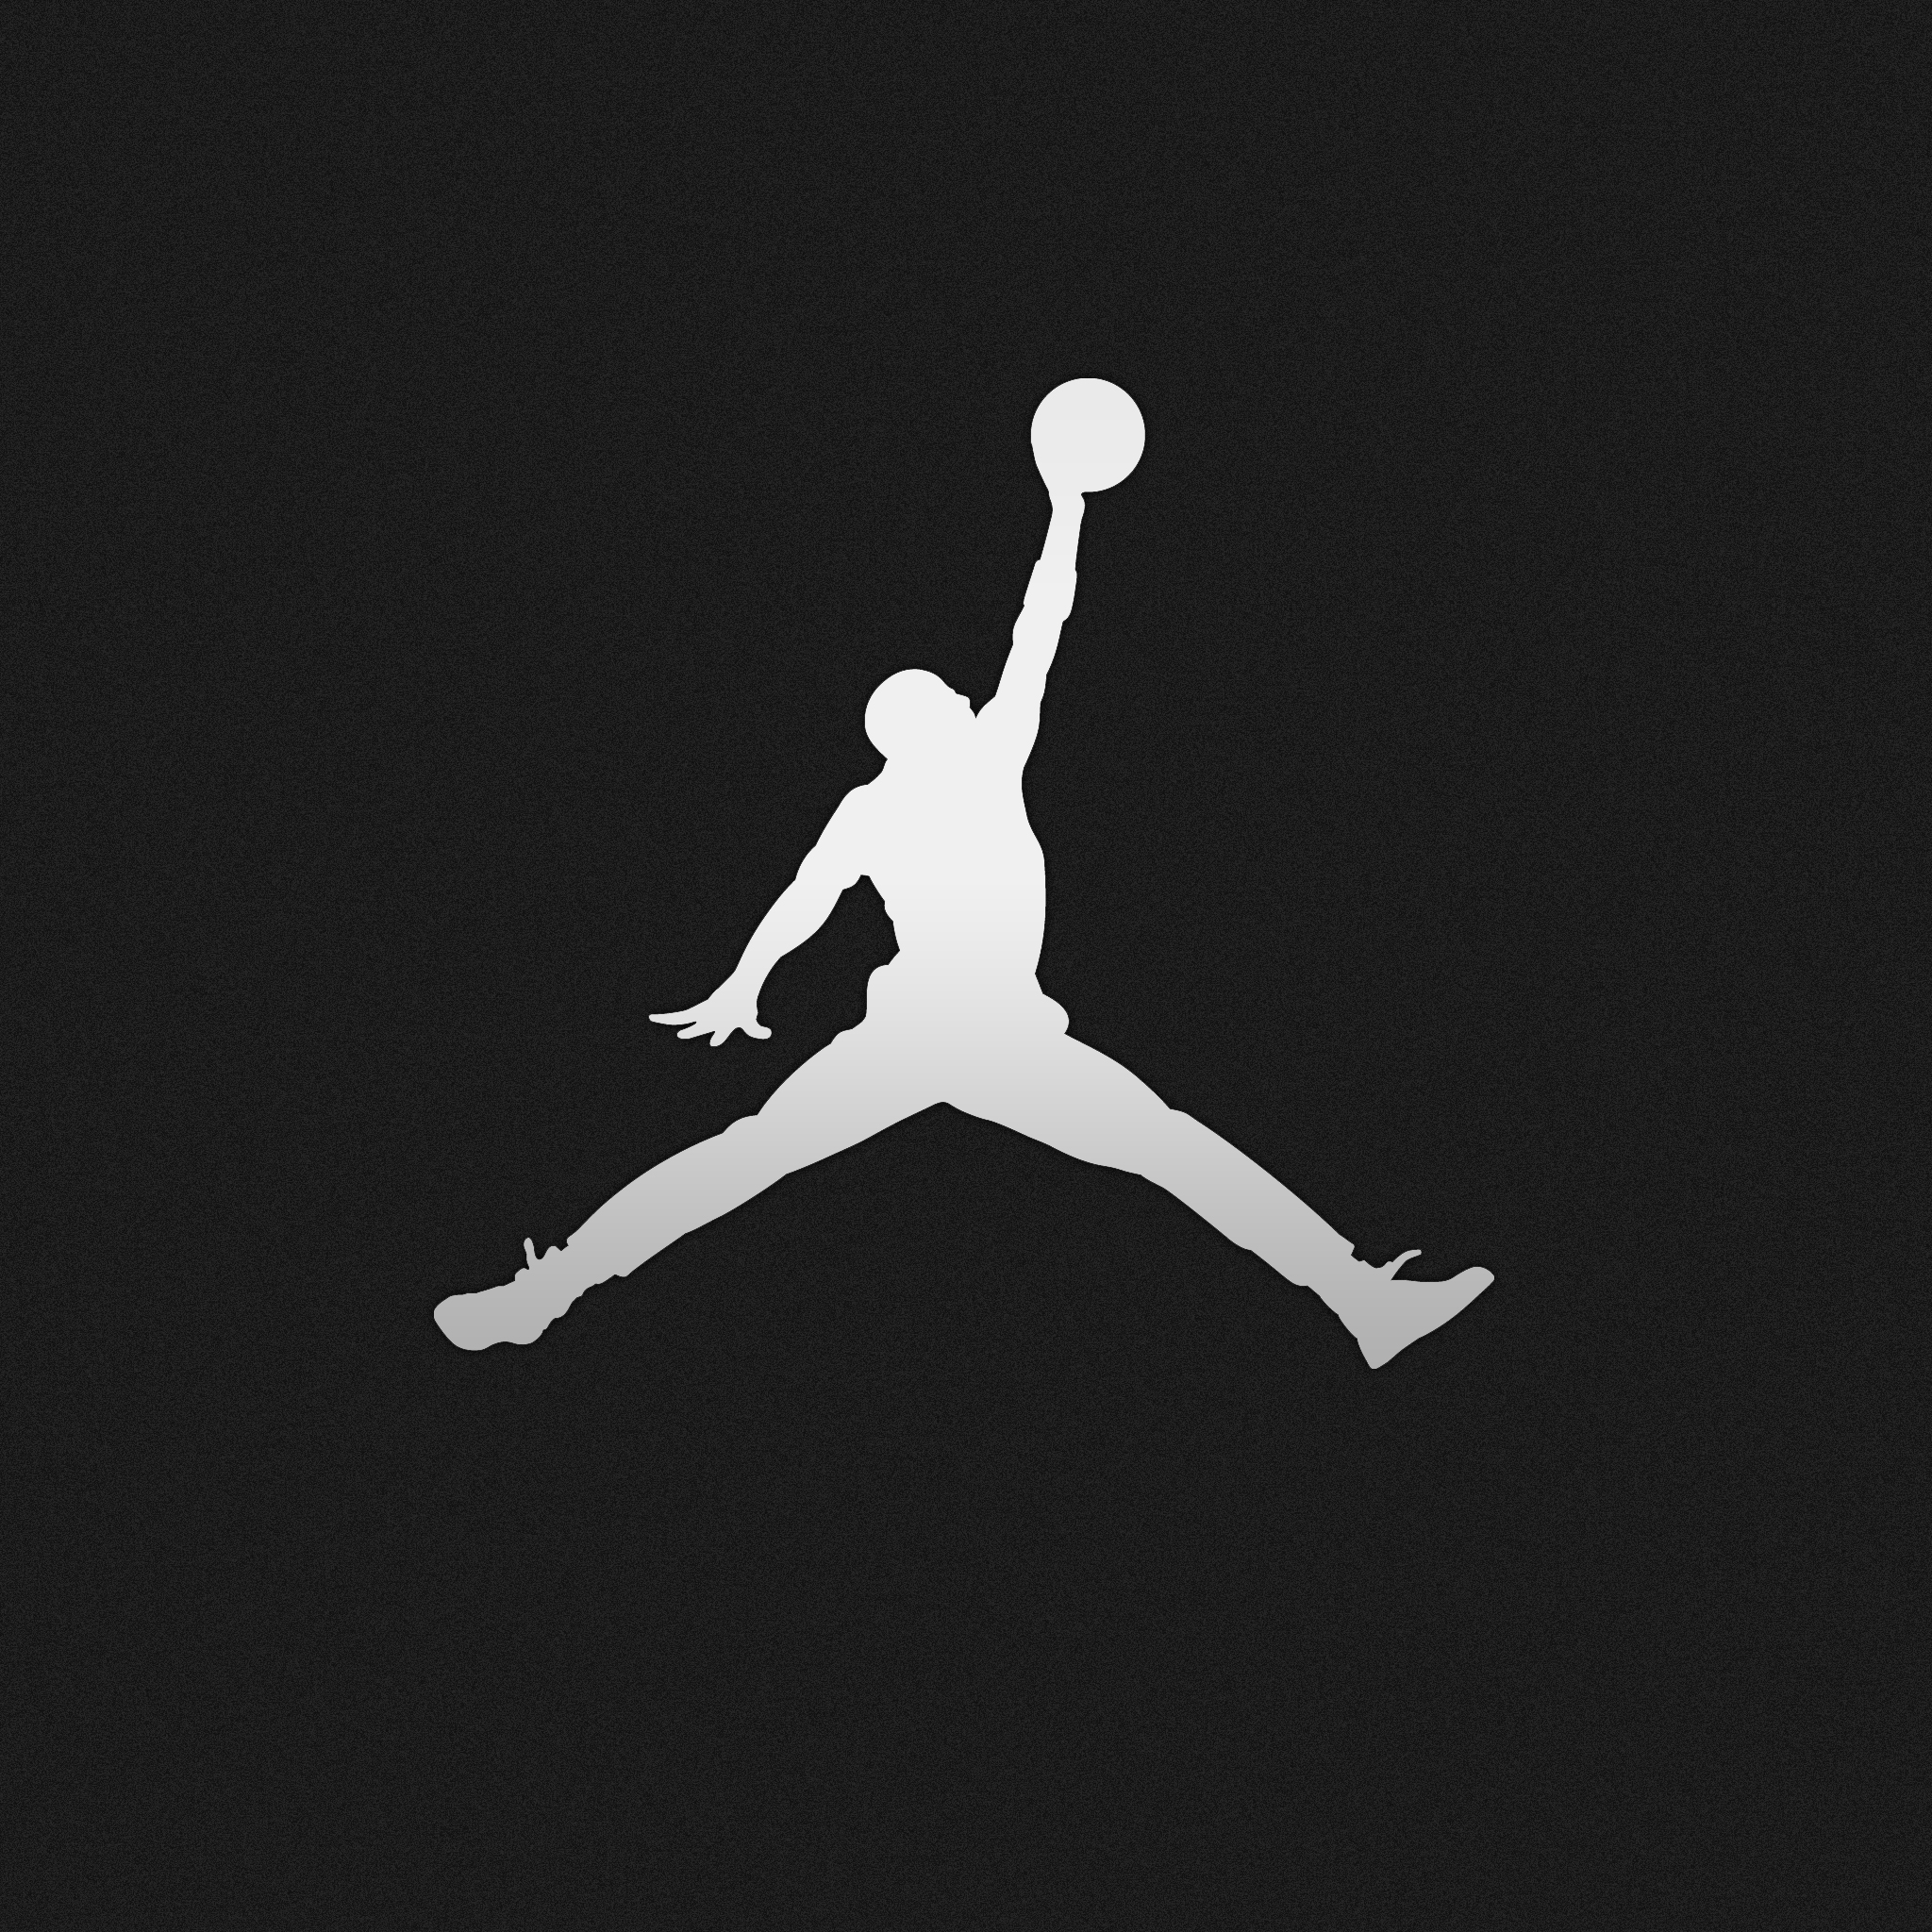 Wallpaper HD iPhone Jordan - iPad - Free Download